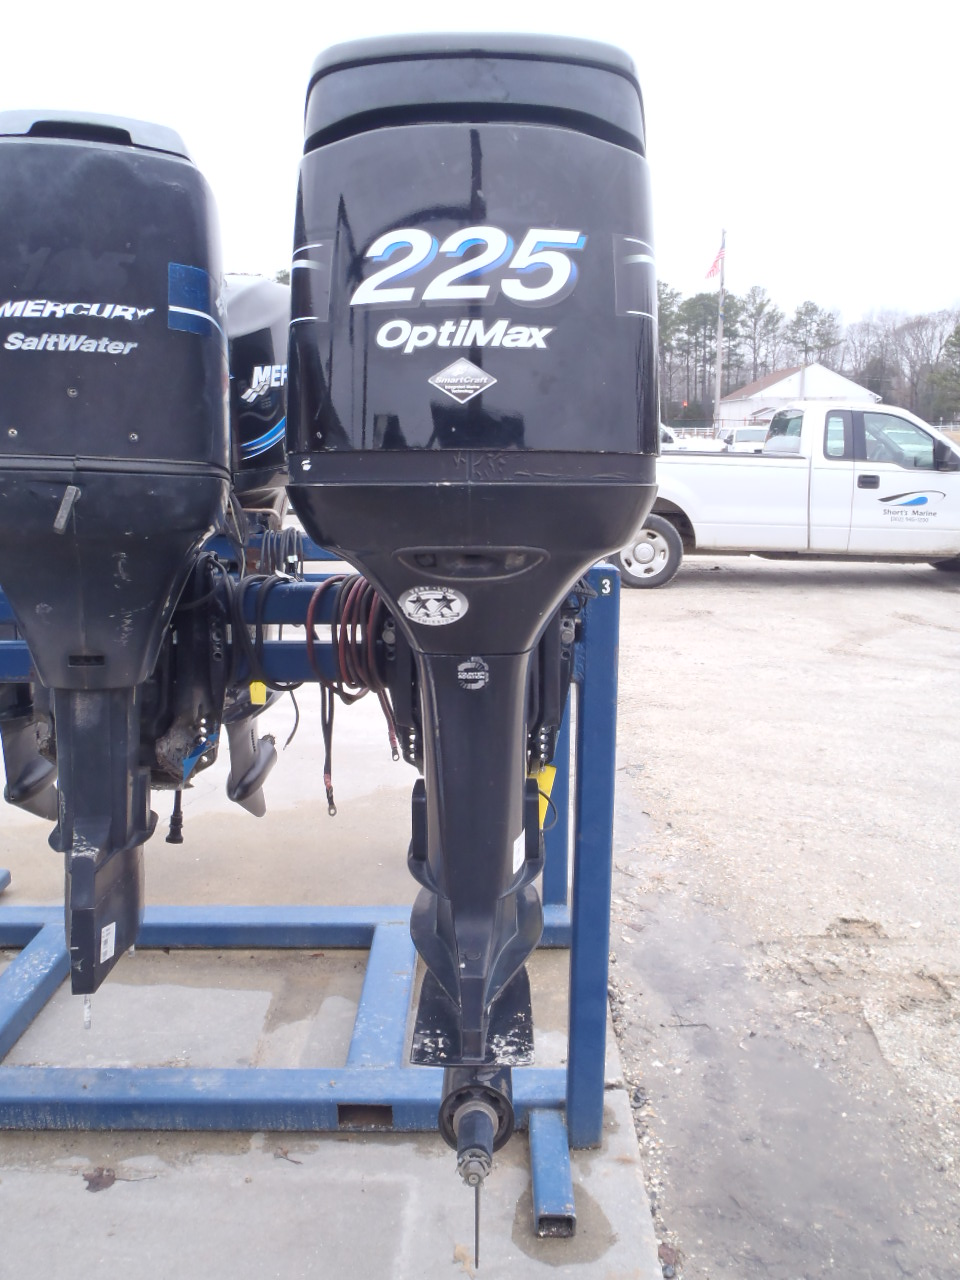 Used 2003 mercury 225xl saltwater optimax 225hp boat motor for Buy new mercury outboard motor